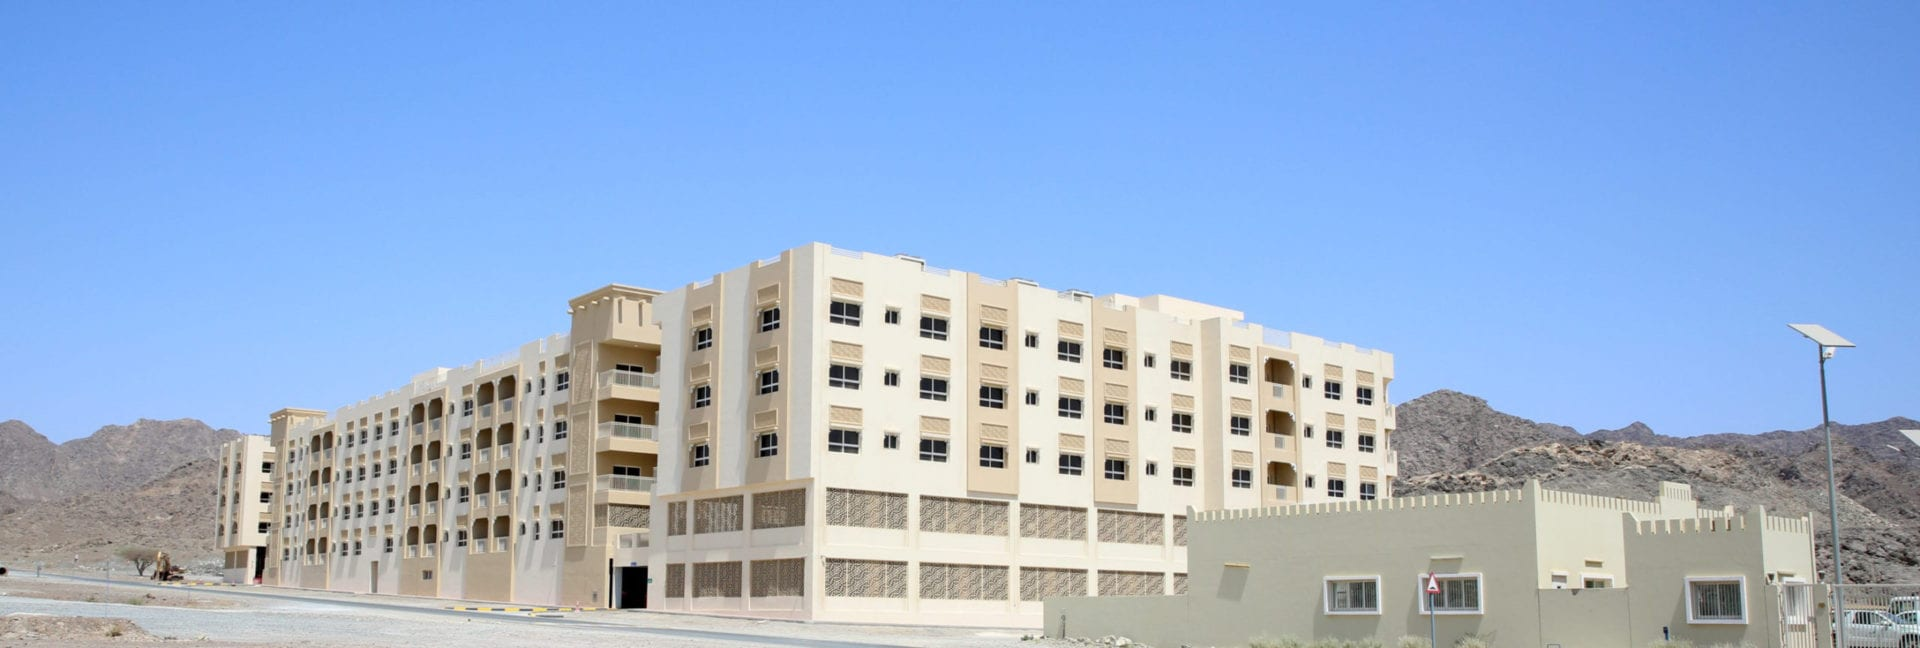 Housing Complex For Municipality Staff At Hatta 3 1 scaled